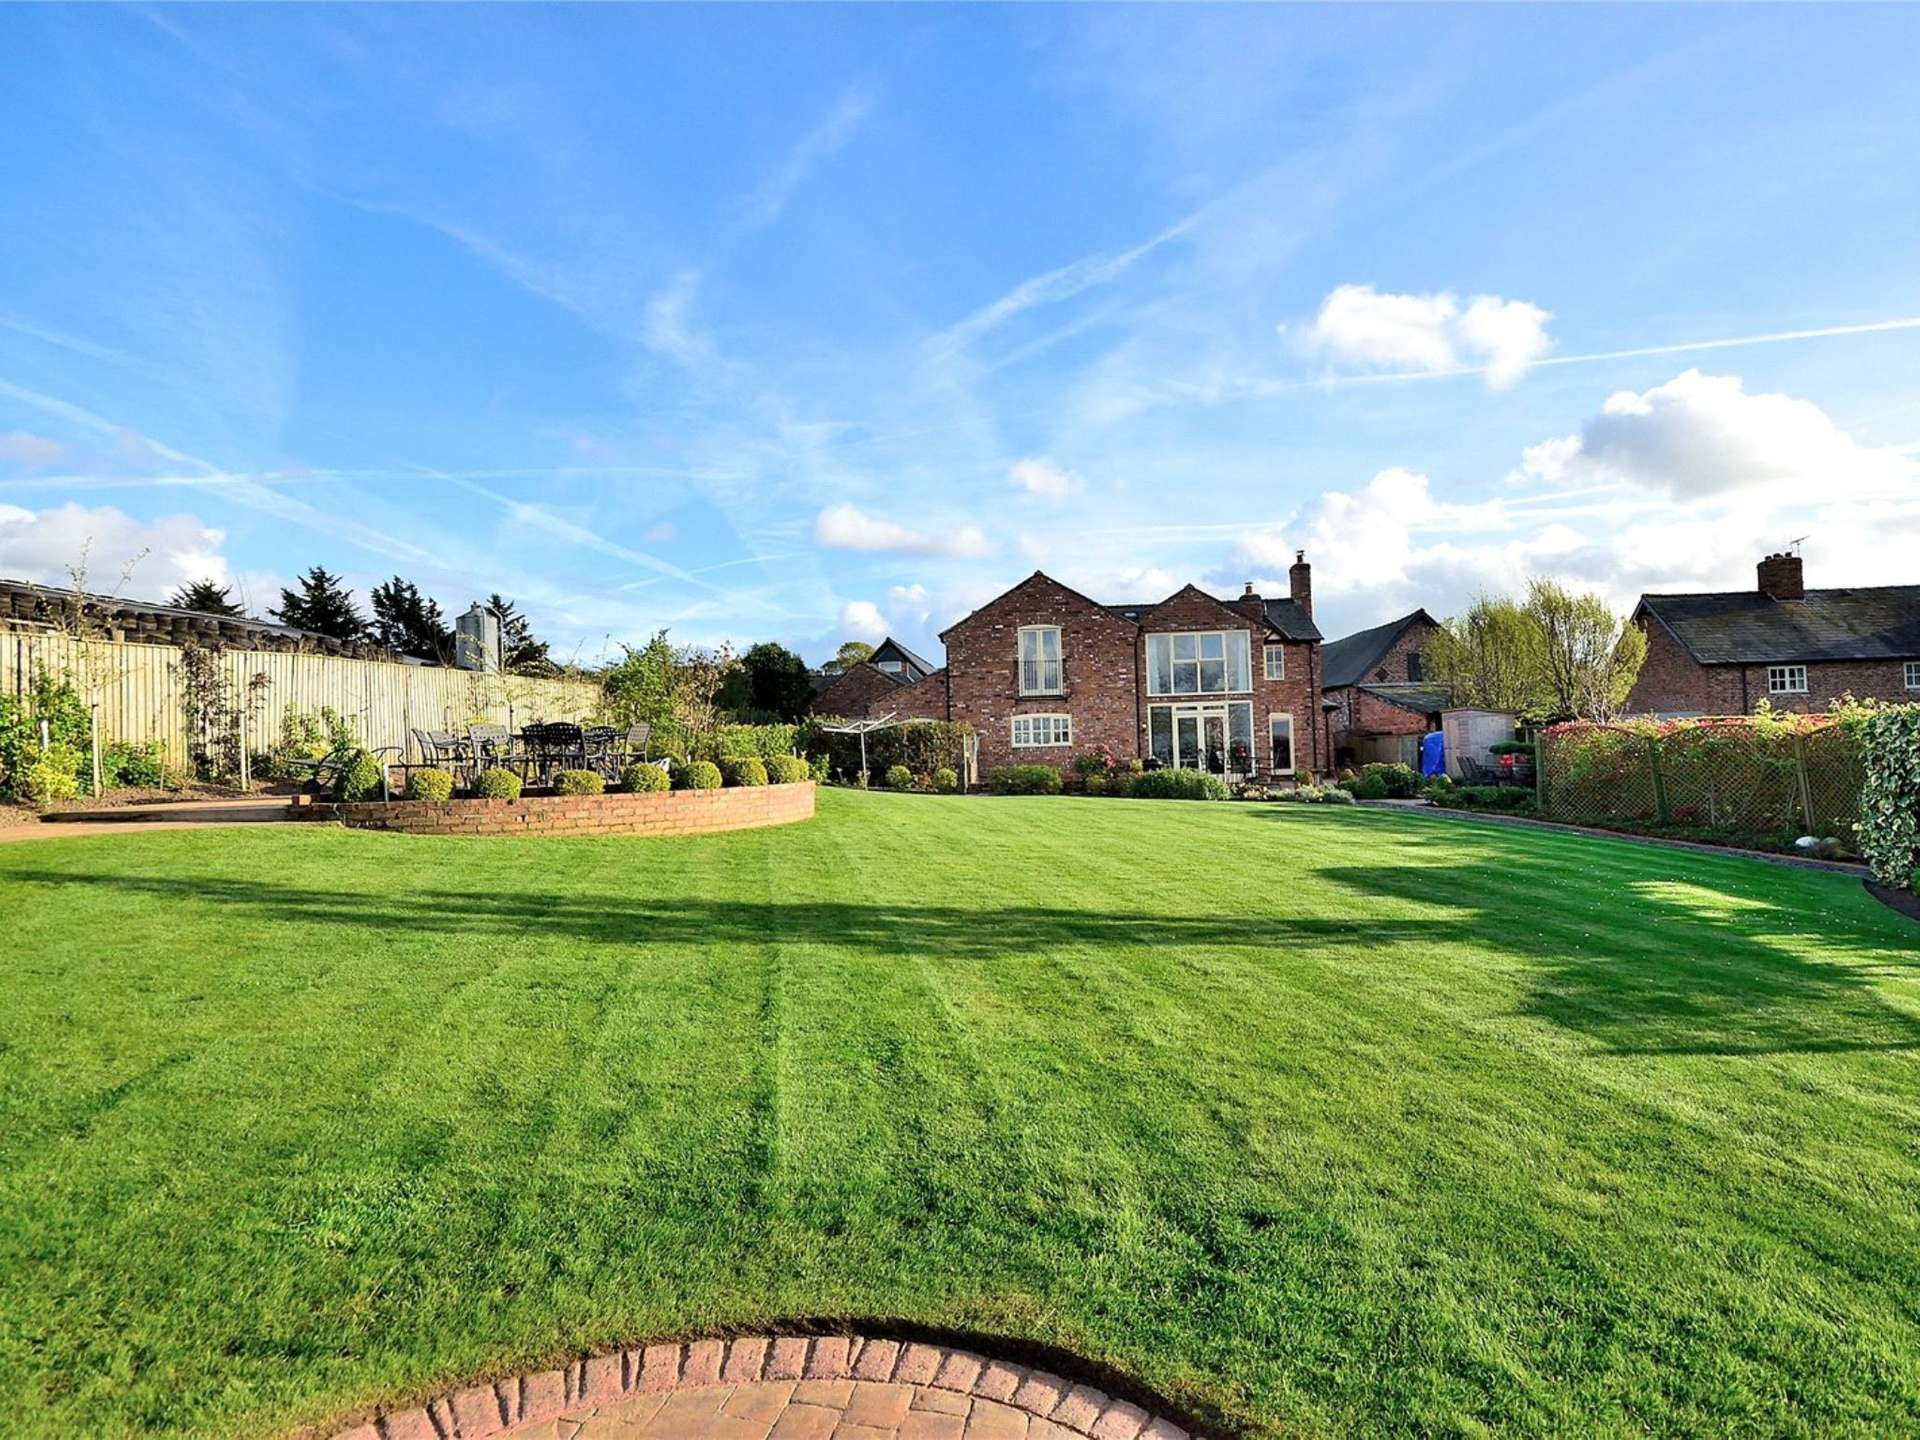 Savills | Property For Sale In Cheshire, England